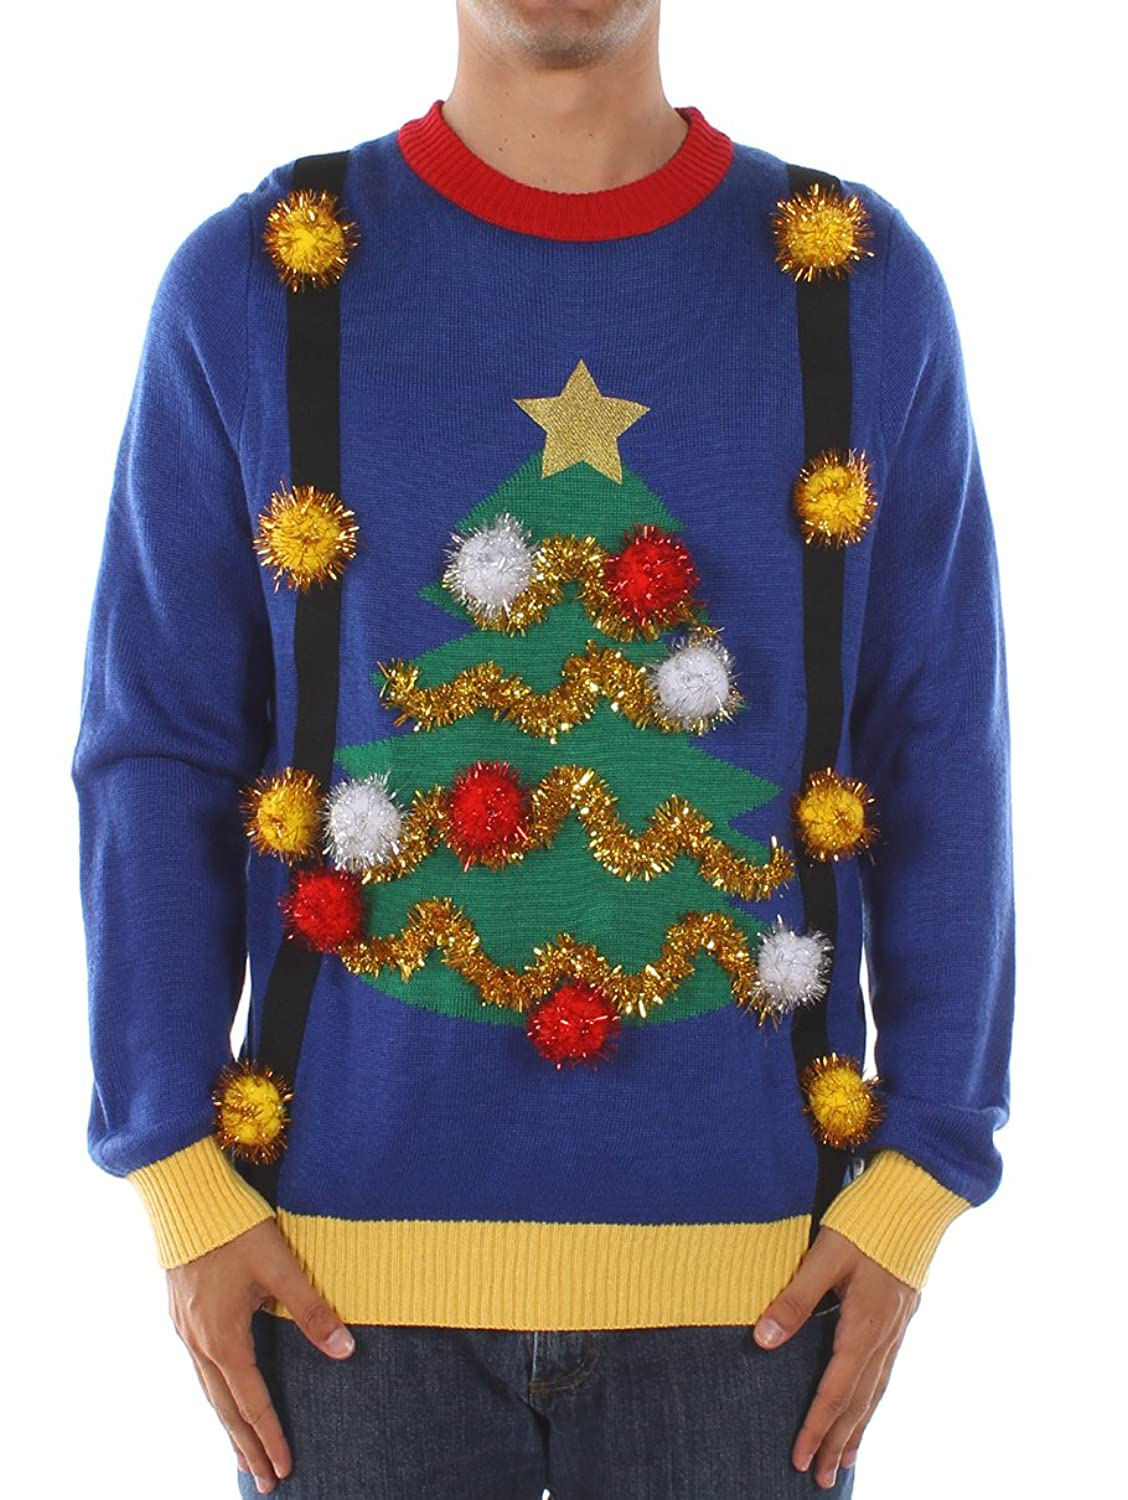 Men's Tacky Christmas Sweater - Christmas Tree Sweater with ...